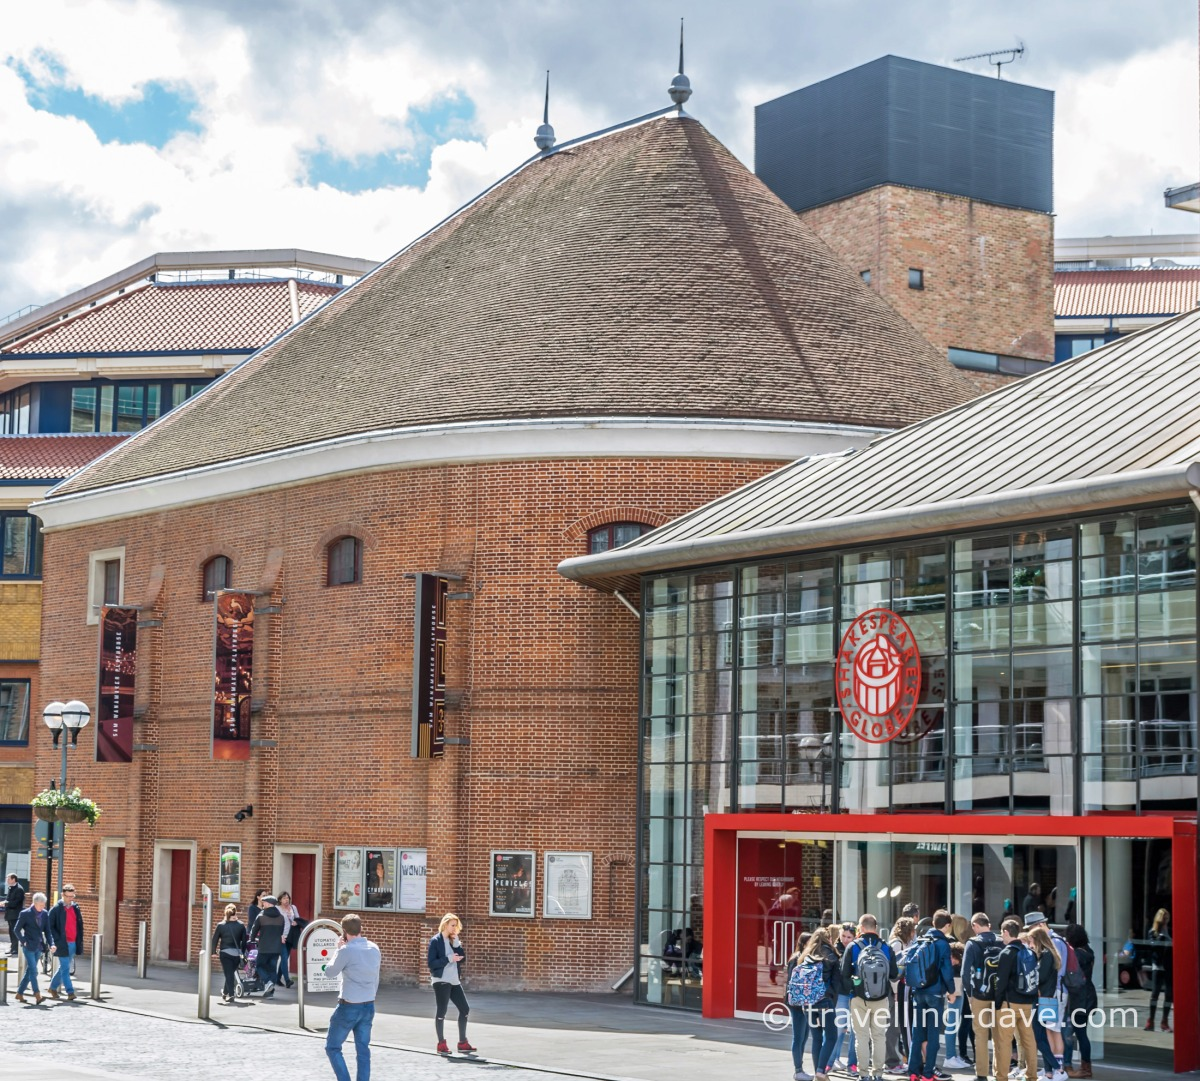 View of London's Wanamaker Playhouse